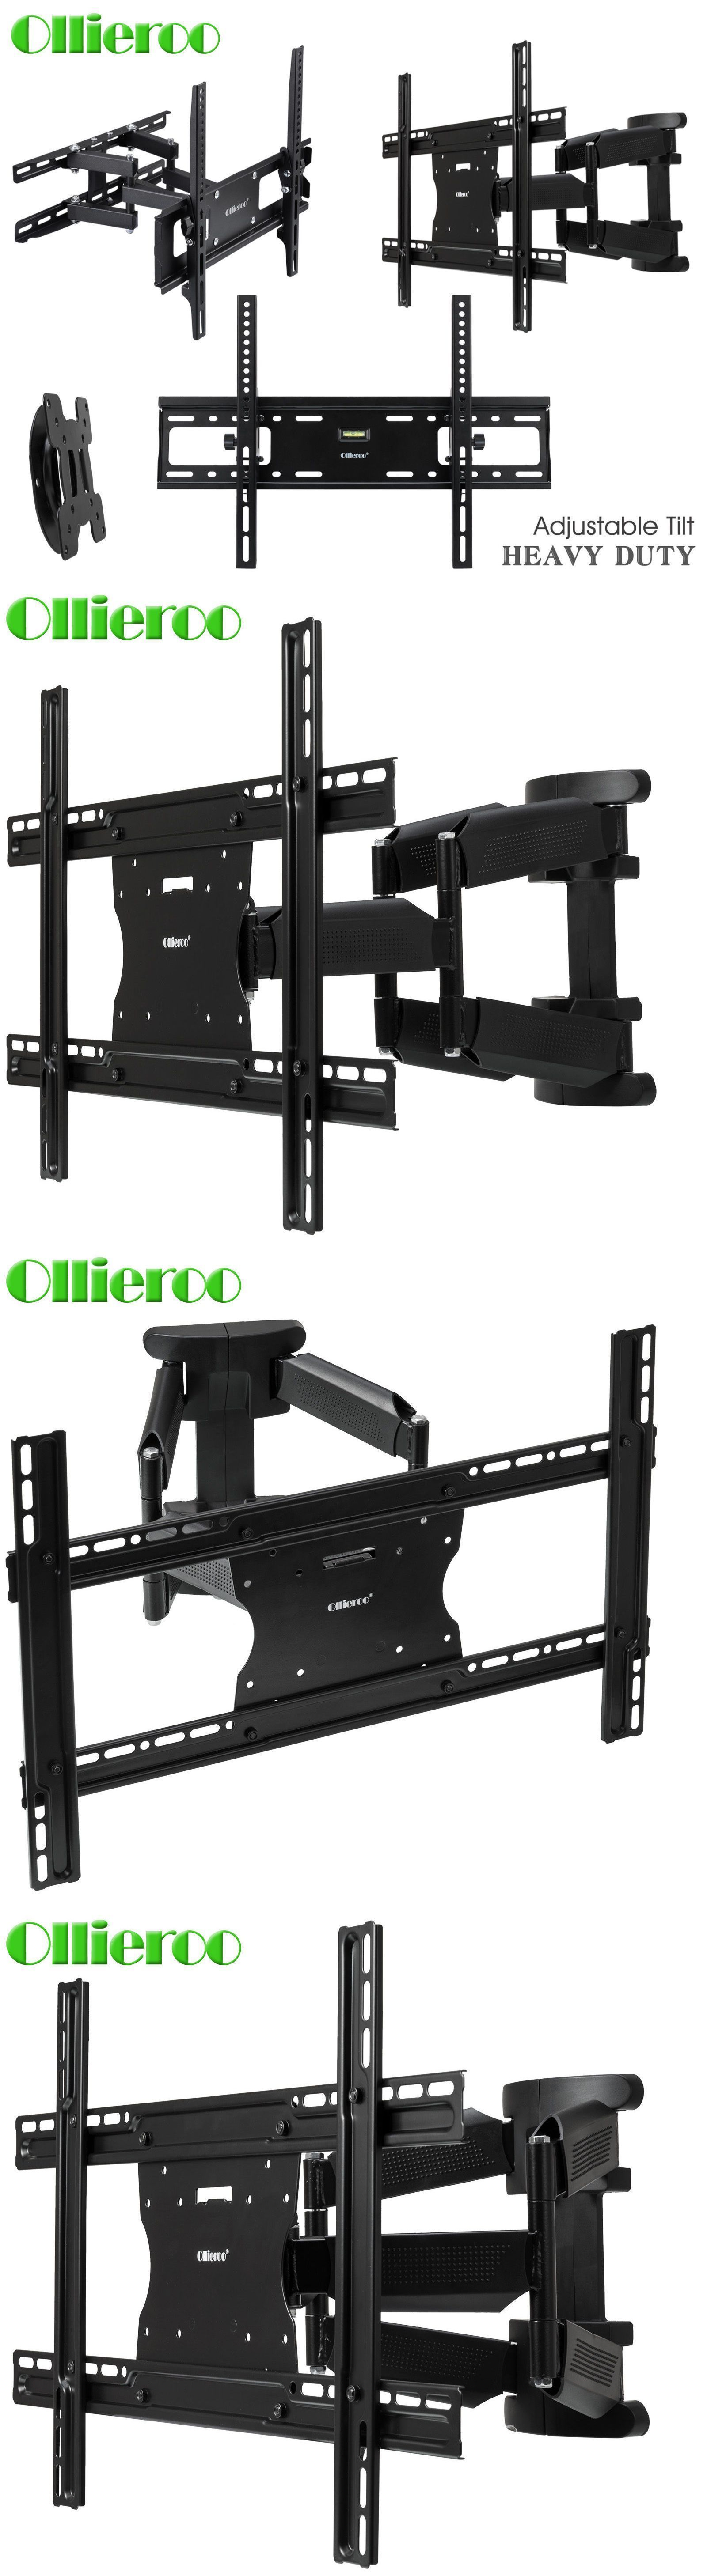 Captivating TV Mounts And Brackets: Fixed, Tilt, Or Full Motion Tv Wall Mount Bracket Amazing Design